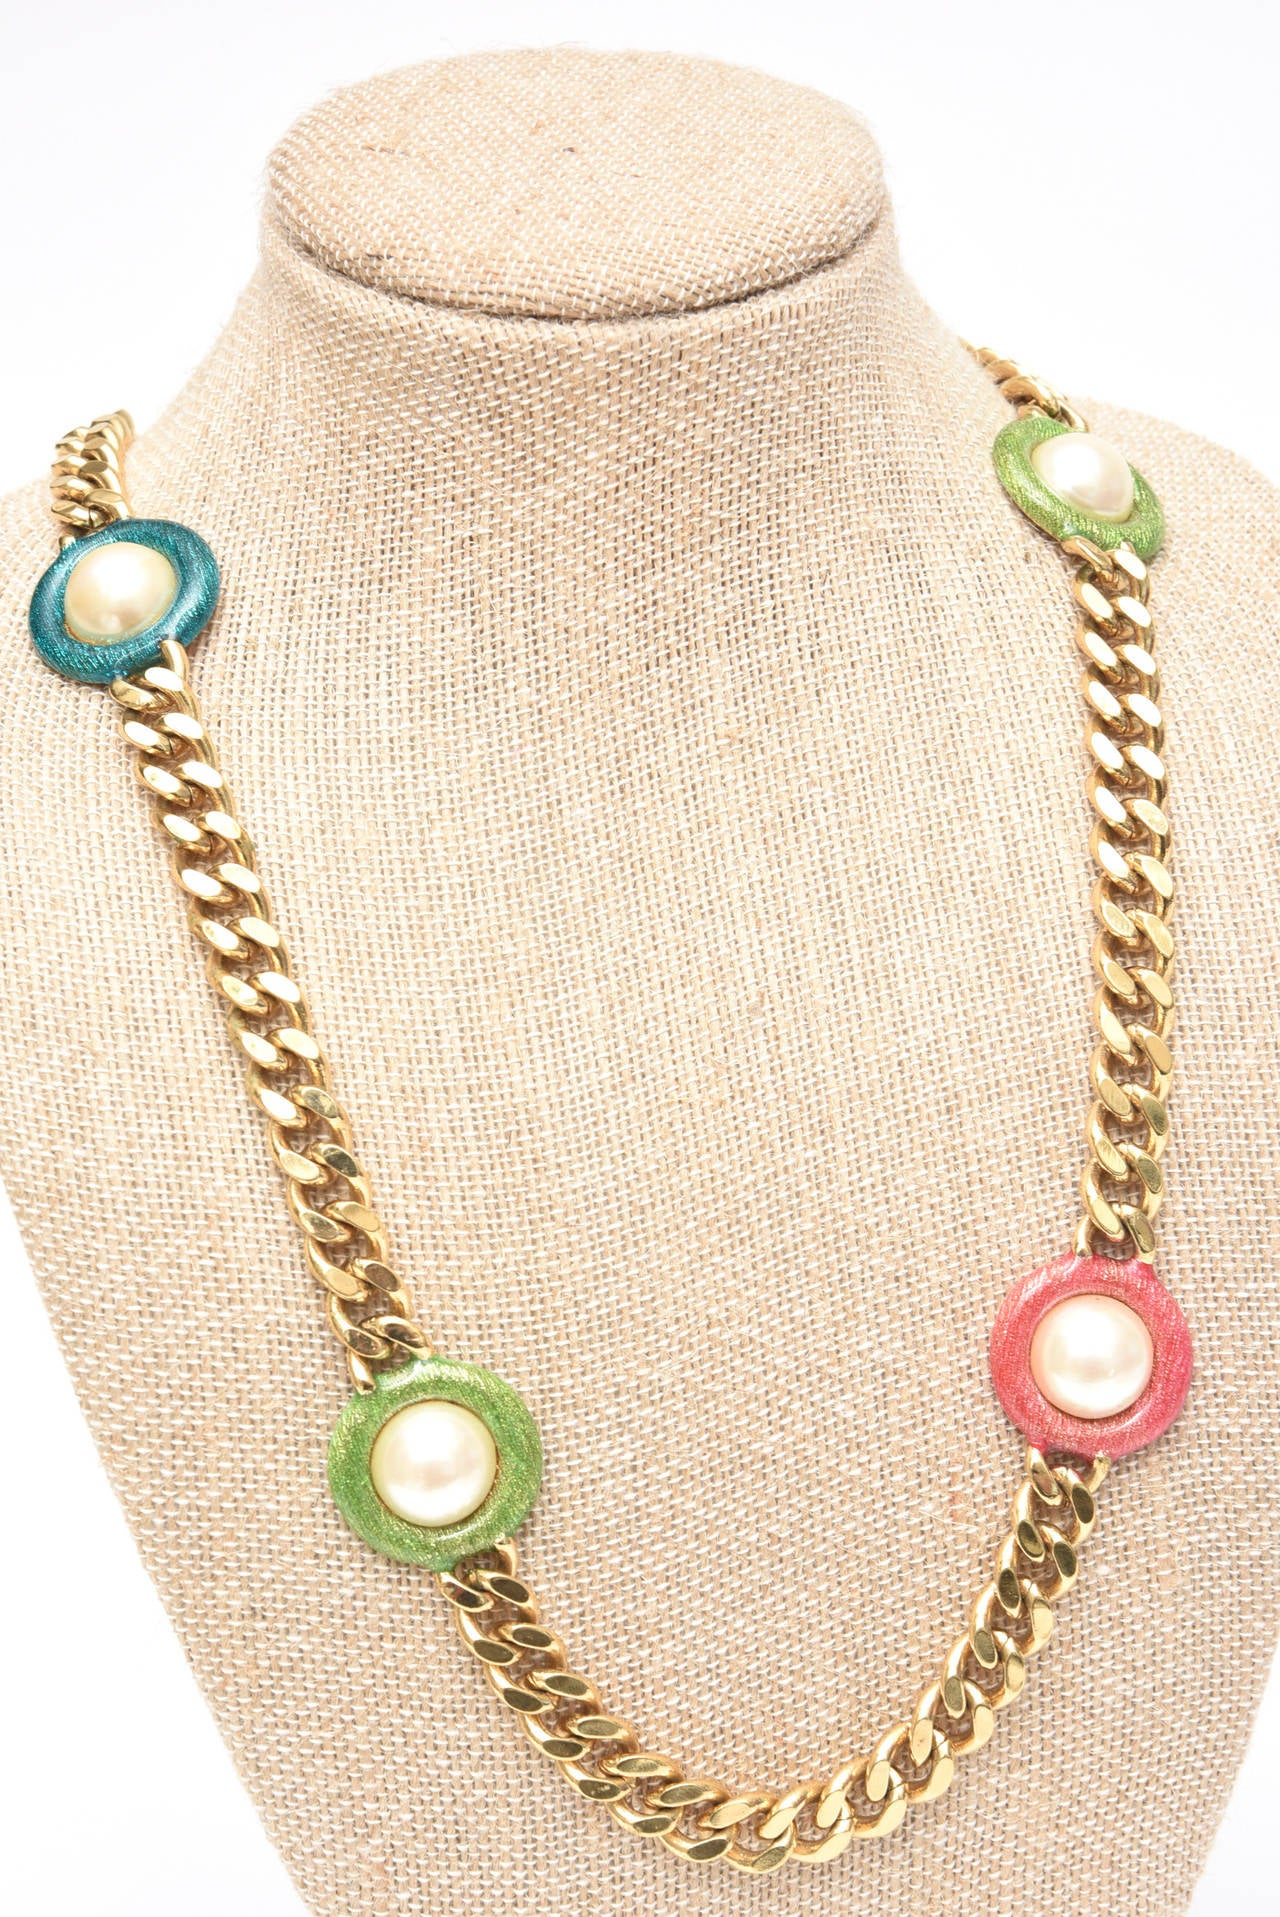 Guy Laroche Gold,Tone Chain Link Strand Necklace with Enamel and Faux Pearl SALE For Sale 4